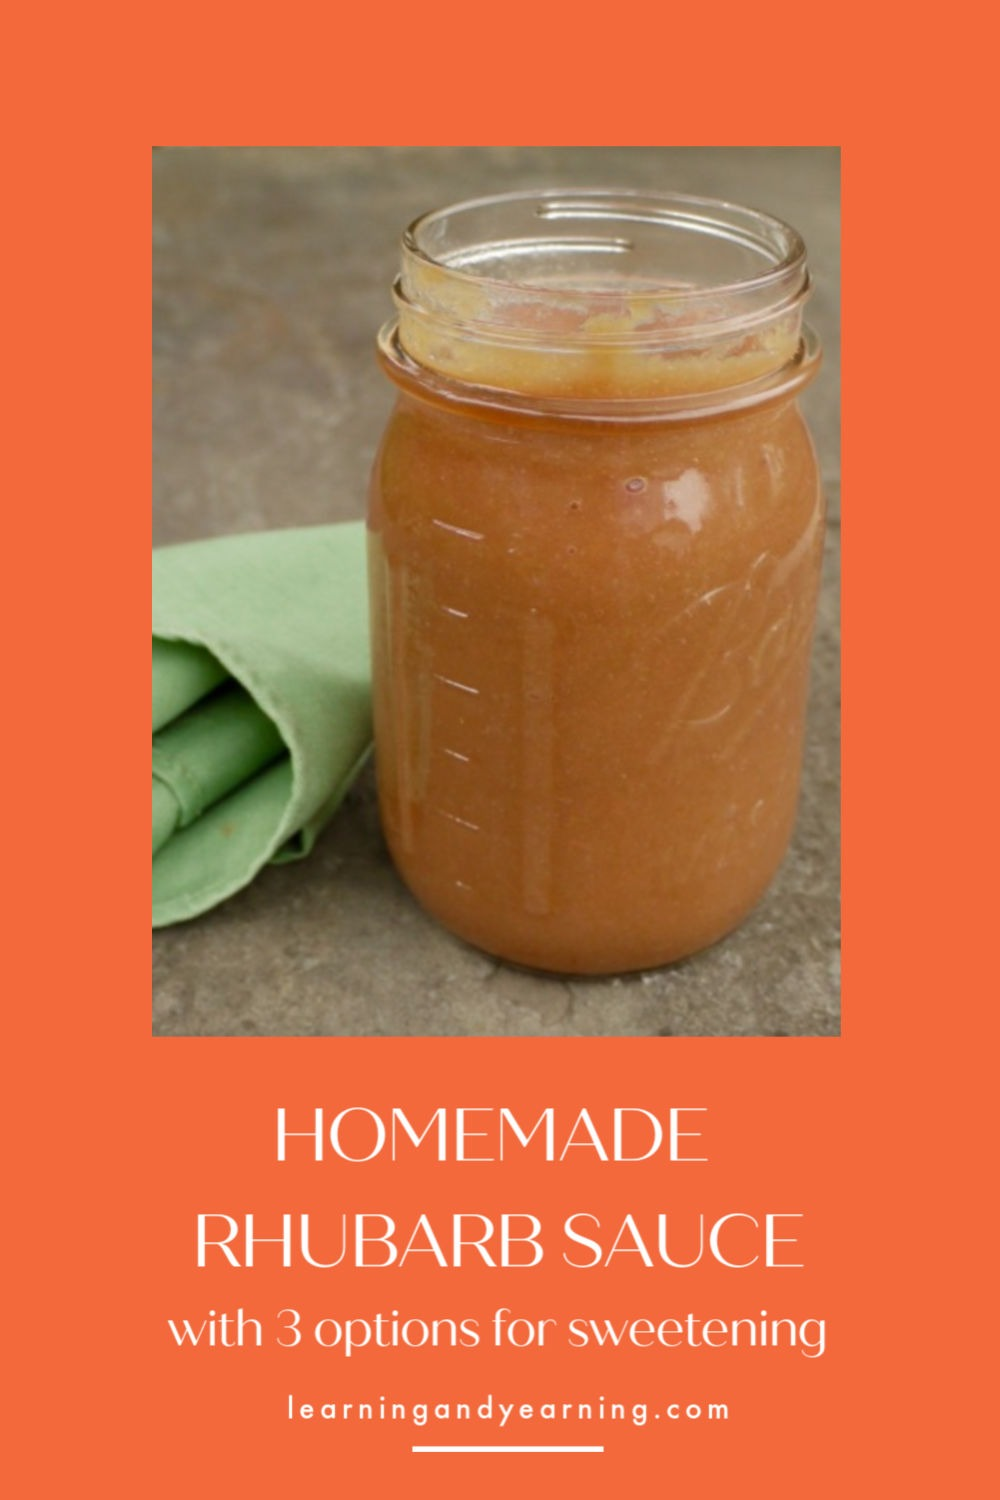 Homemade rhubarb sauce recipe with 3 options for sweetening!